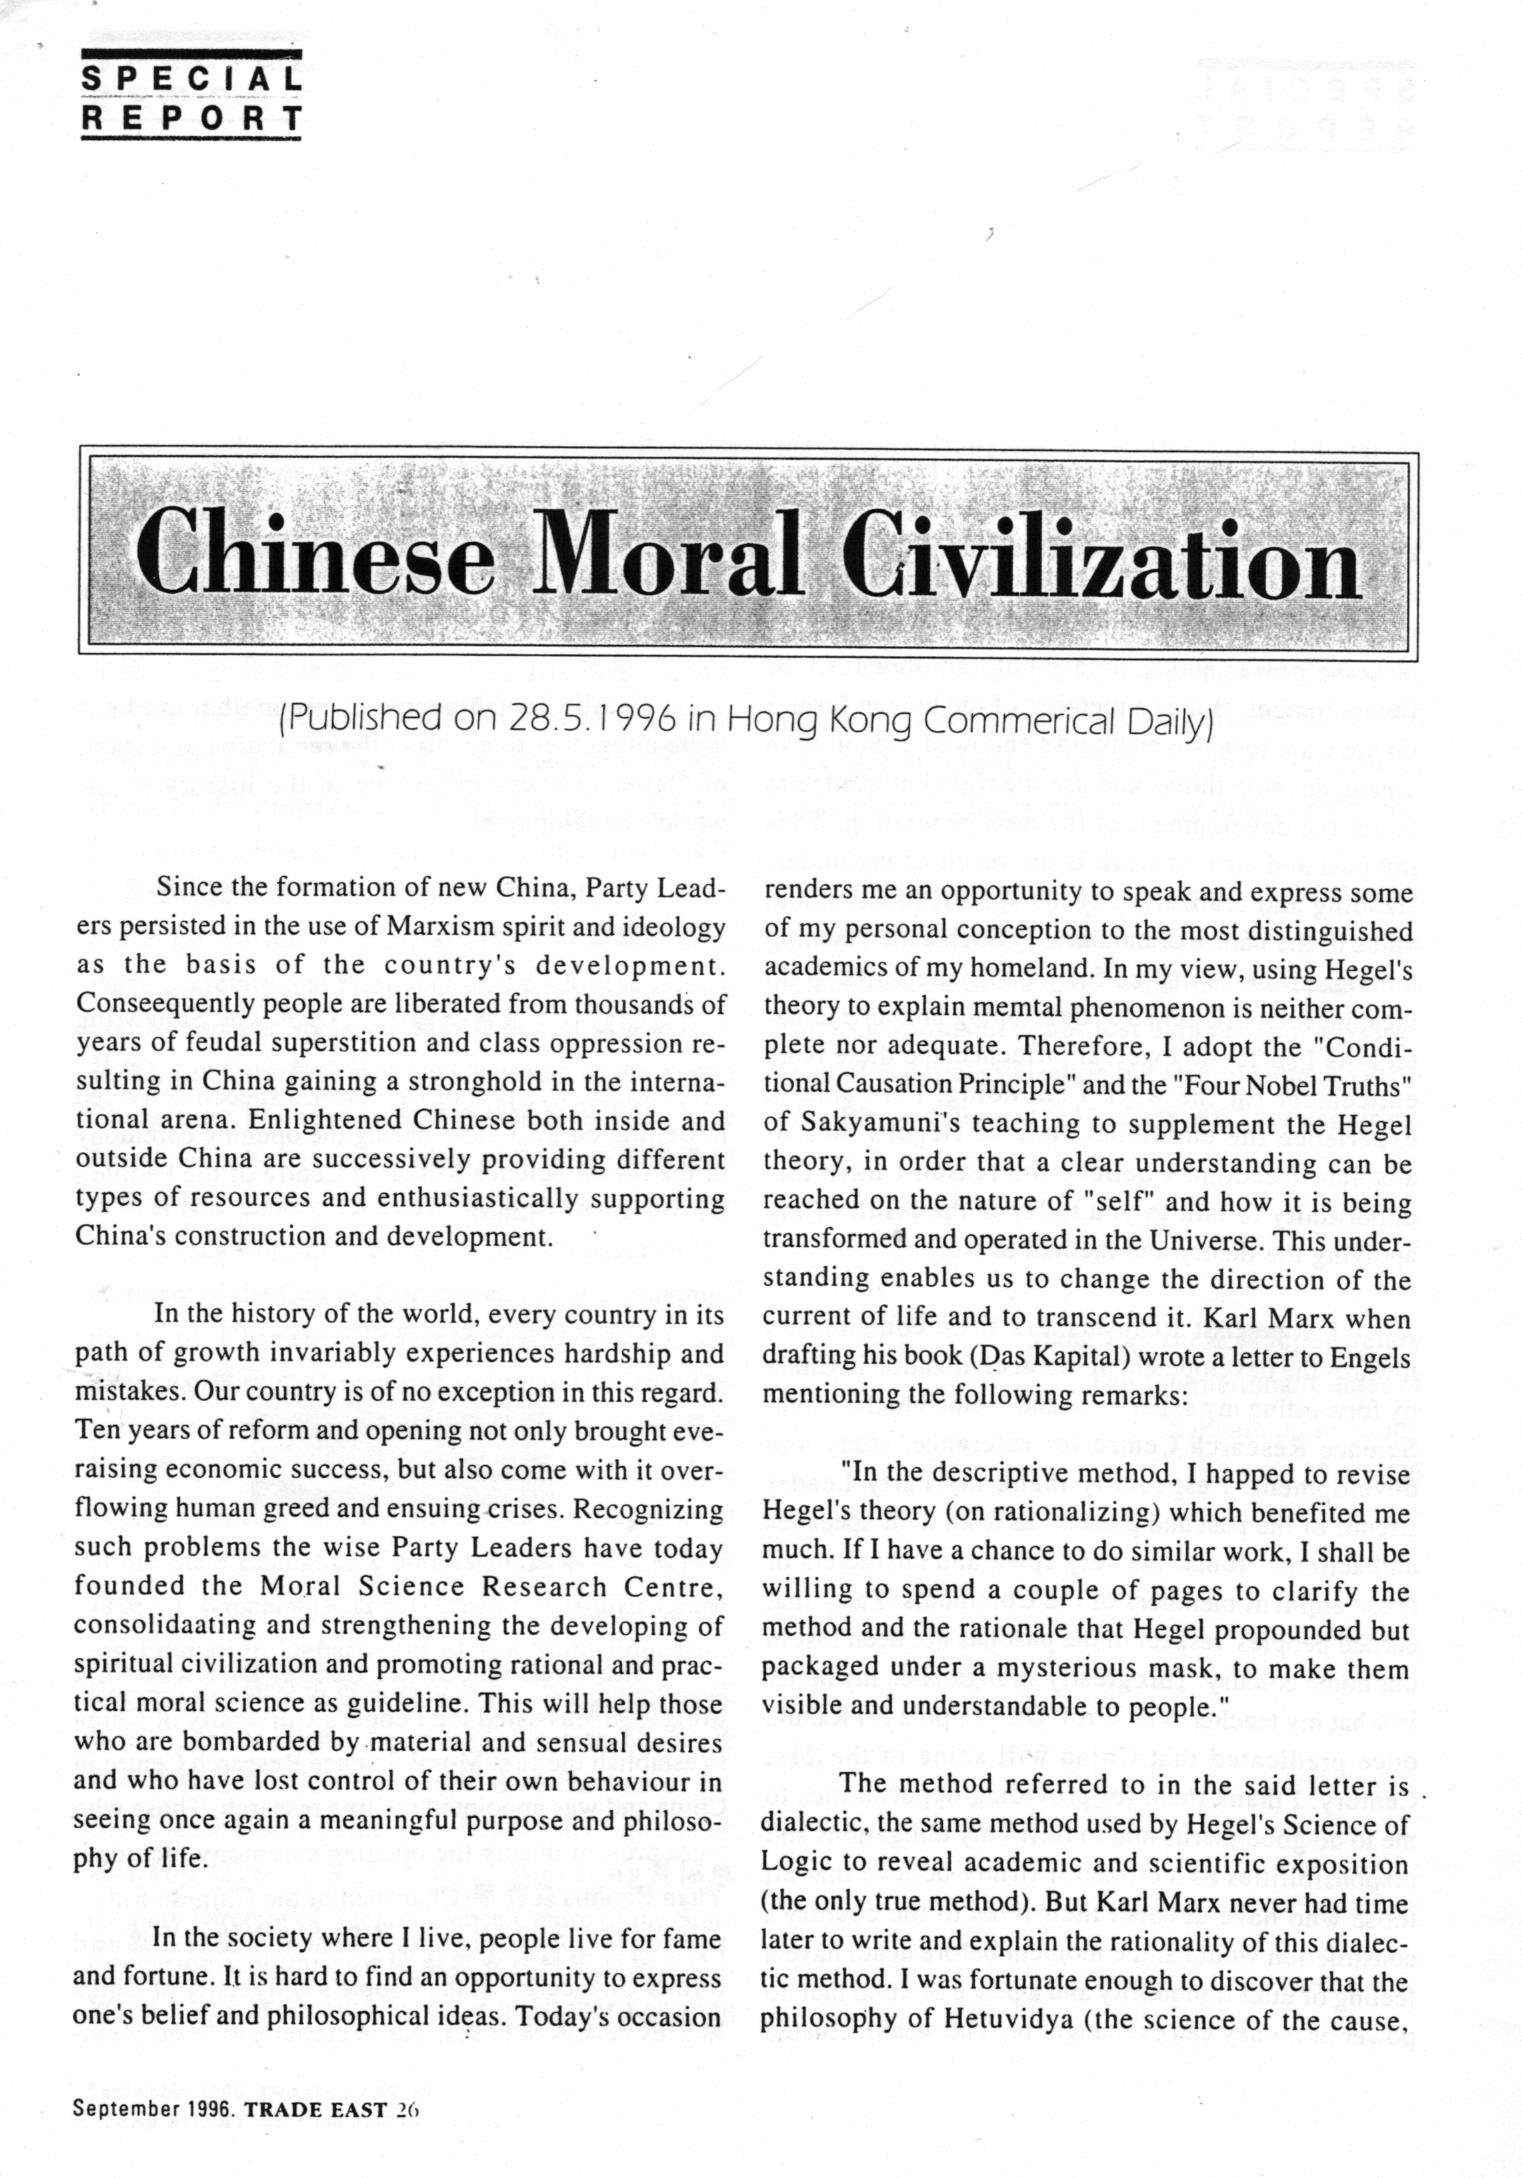 Chinese Moral Civilization(1).jpg